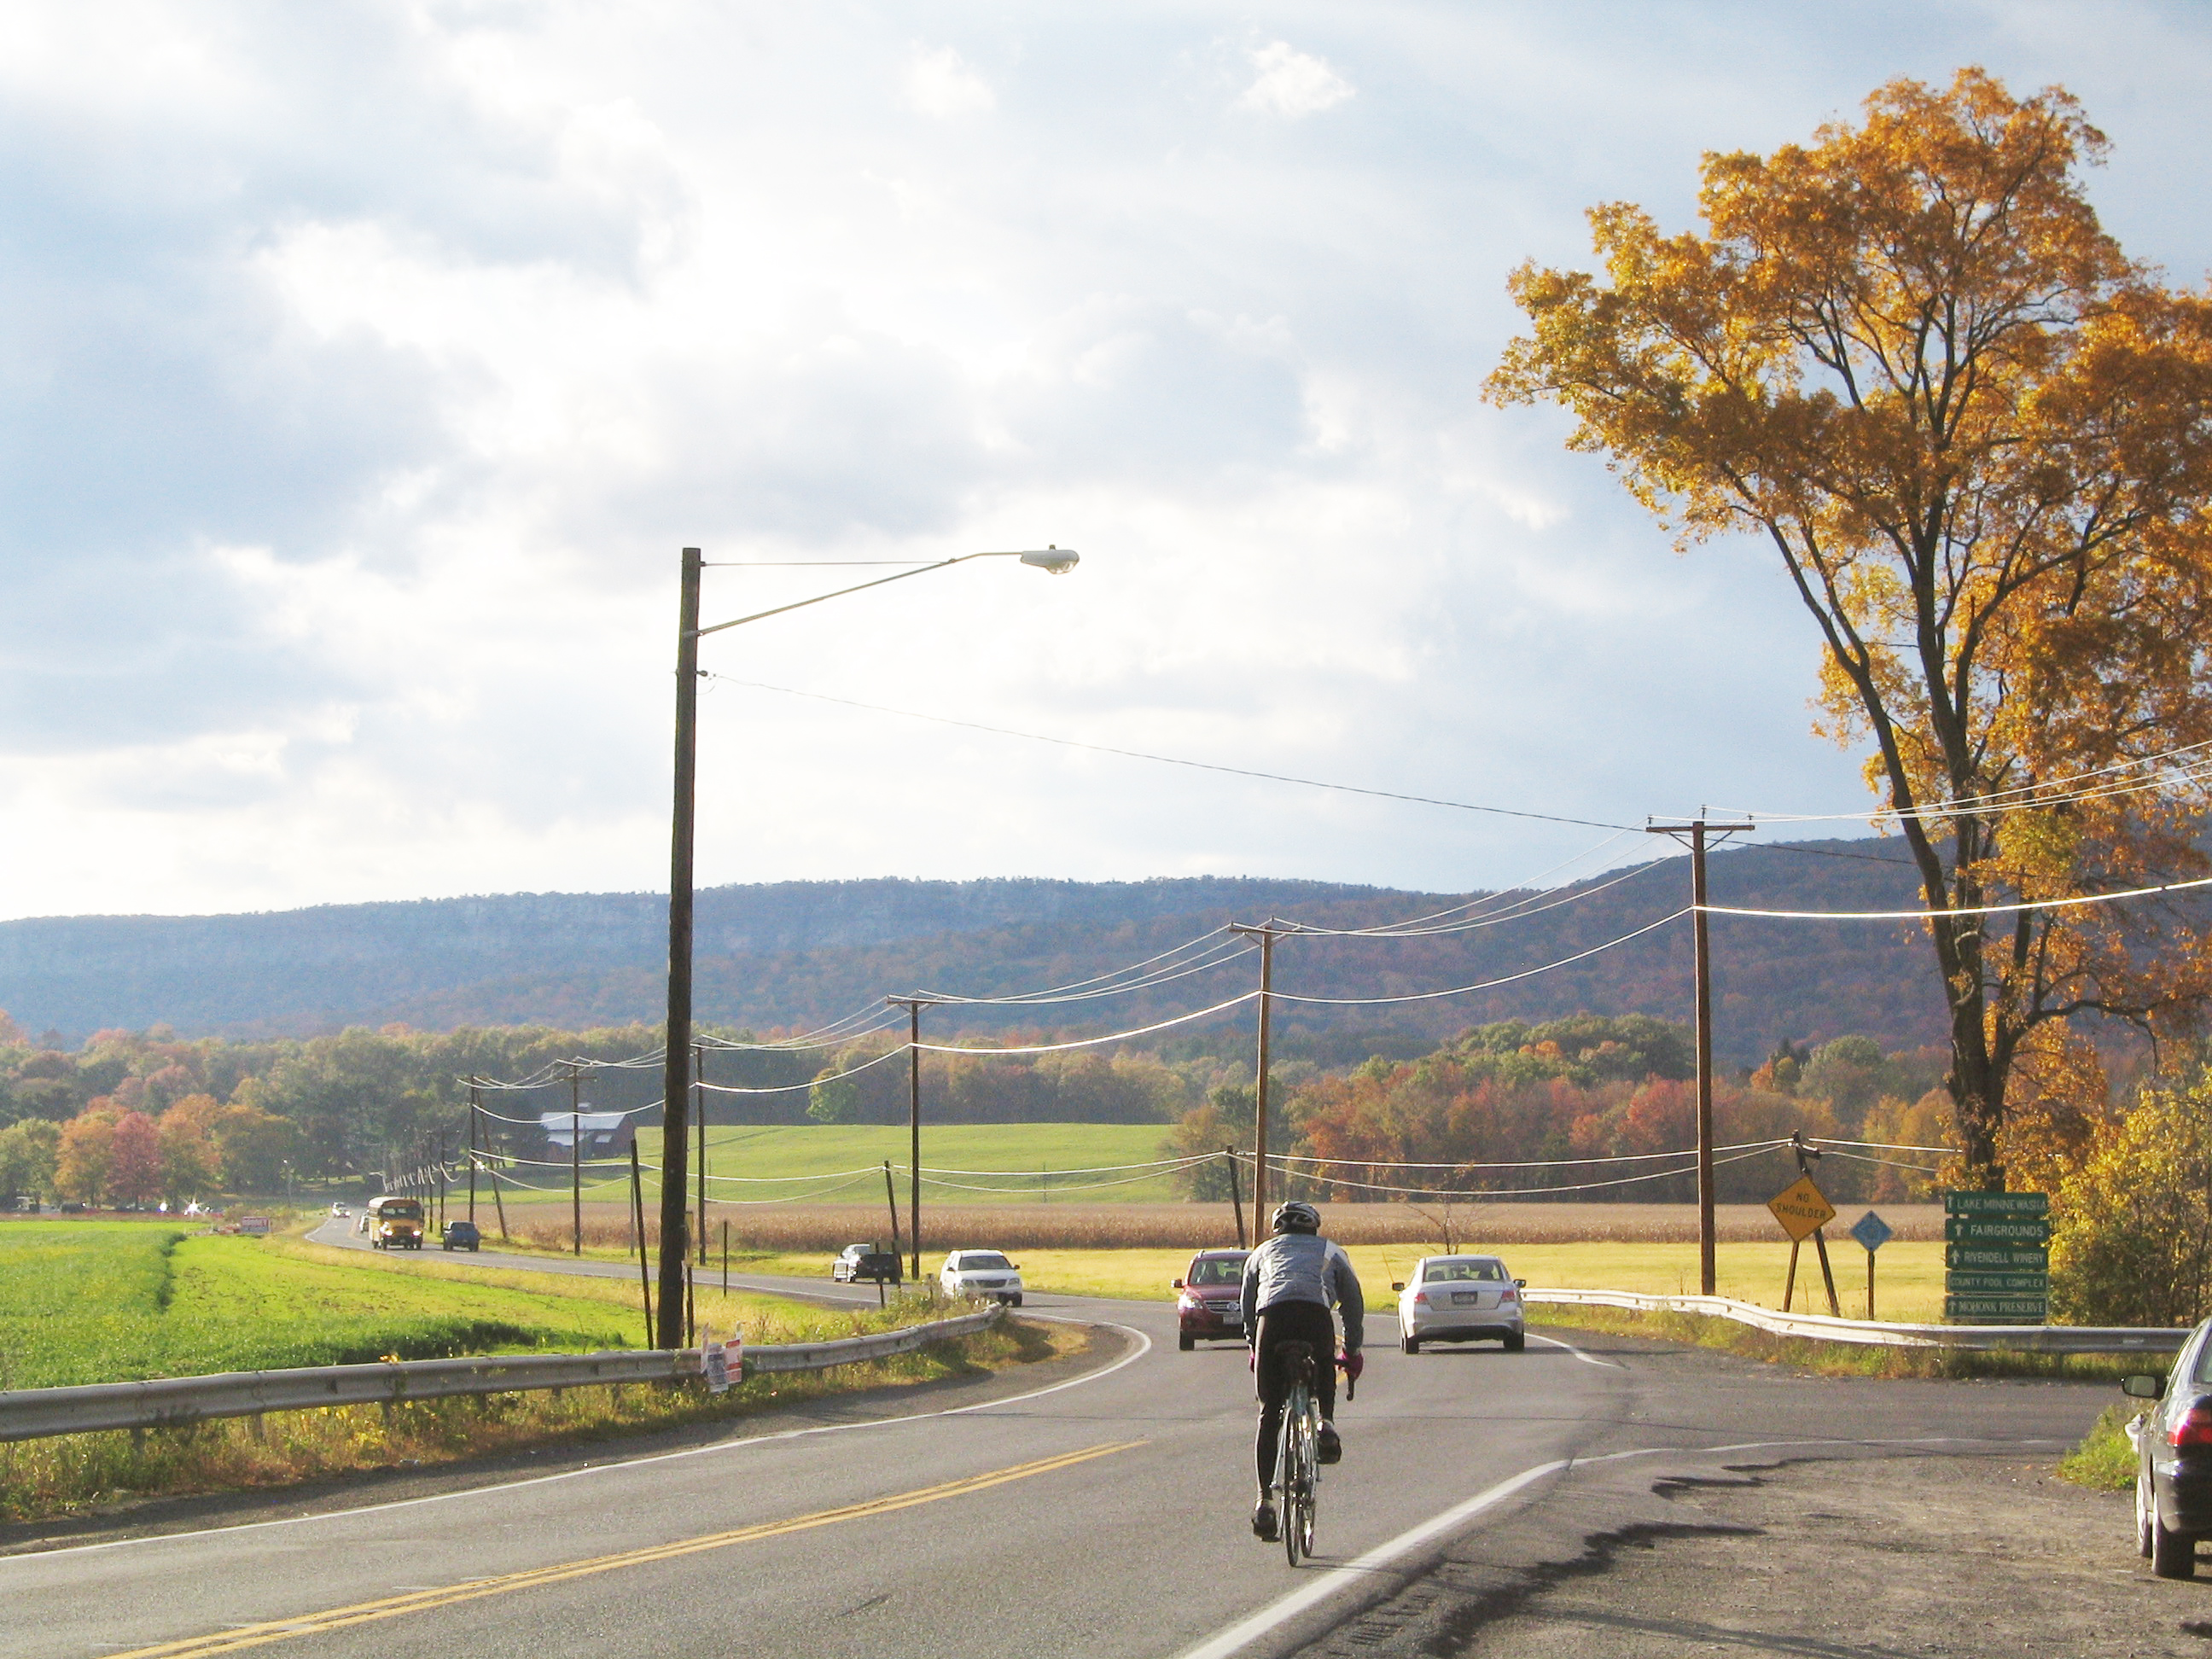 The River-to-Ridge Trail will allow pedestrians and cyclists to avoid traveling on the narrow shoulder of Rt. 299.